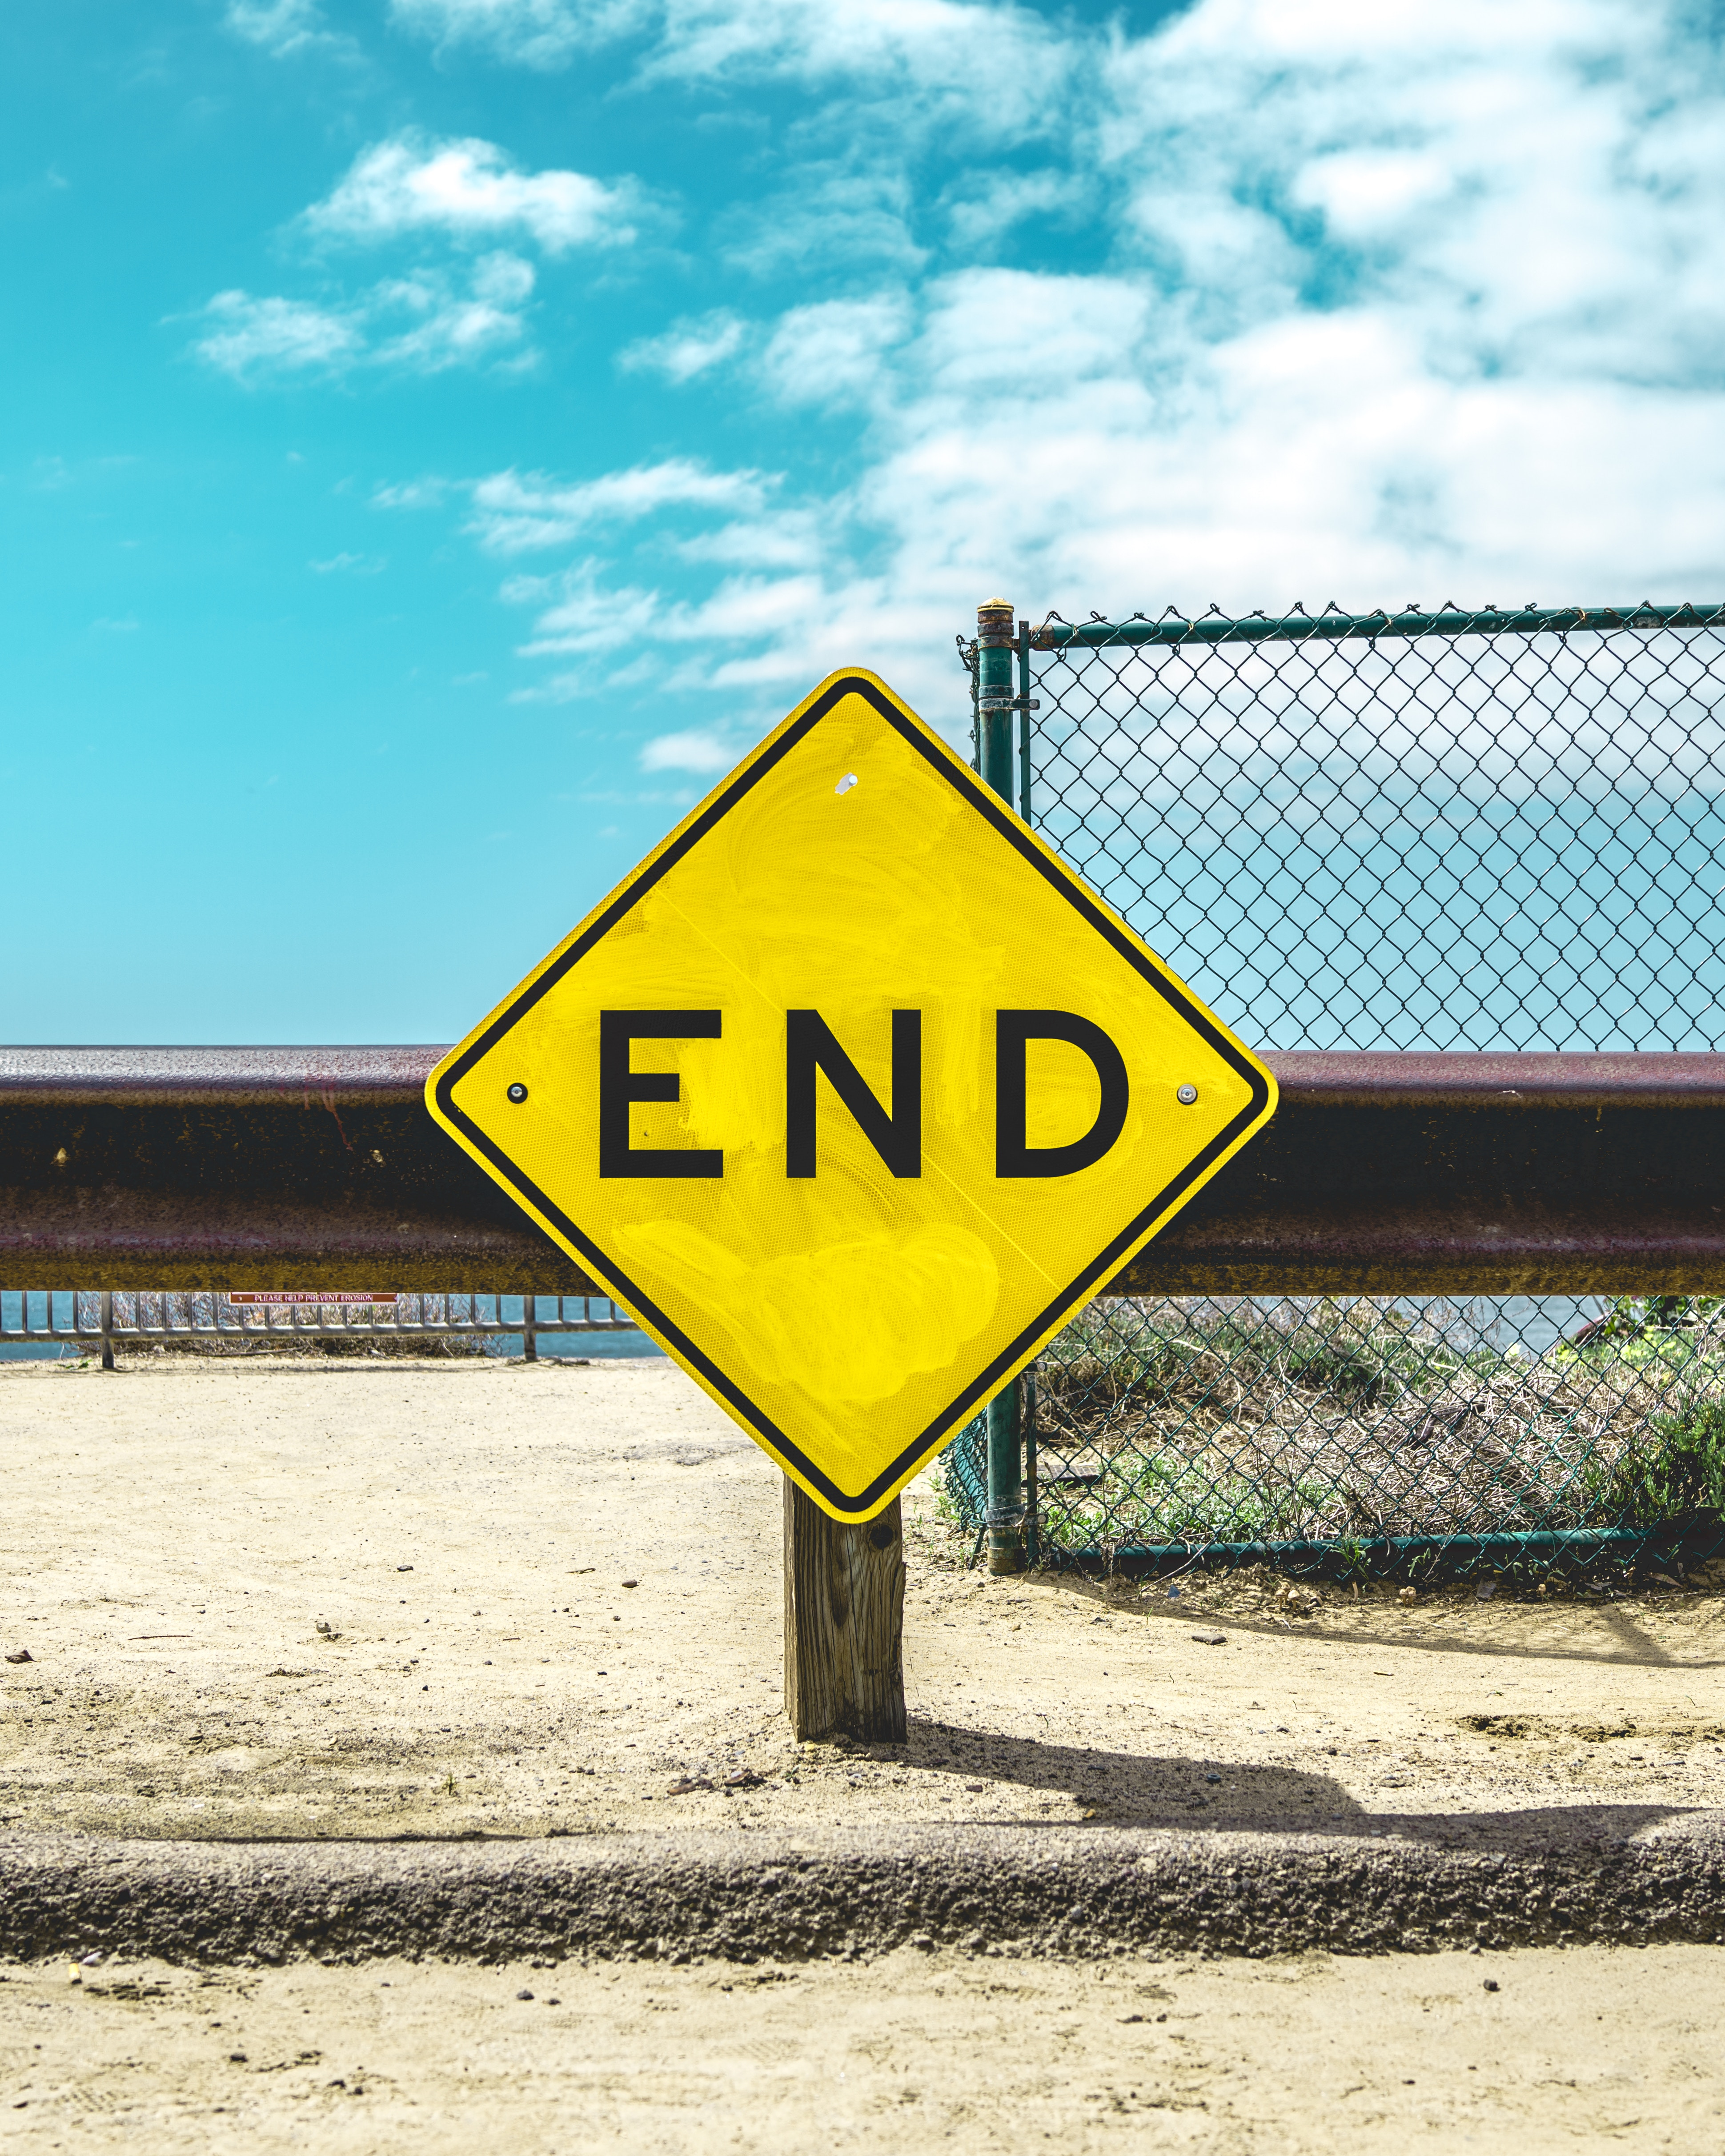 End sign